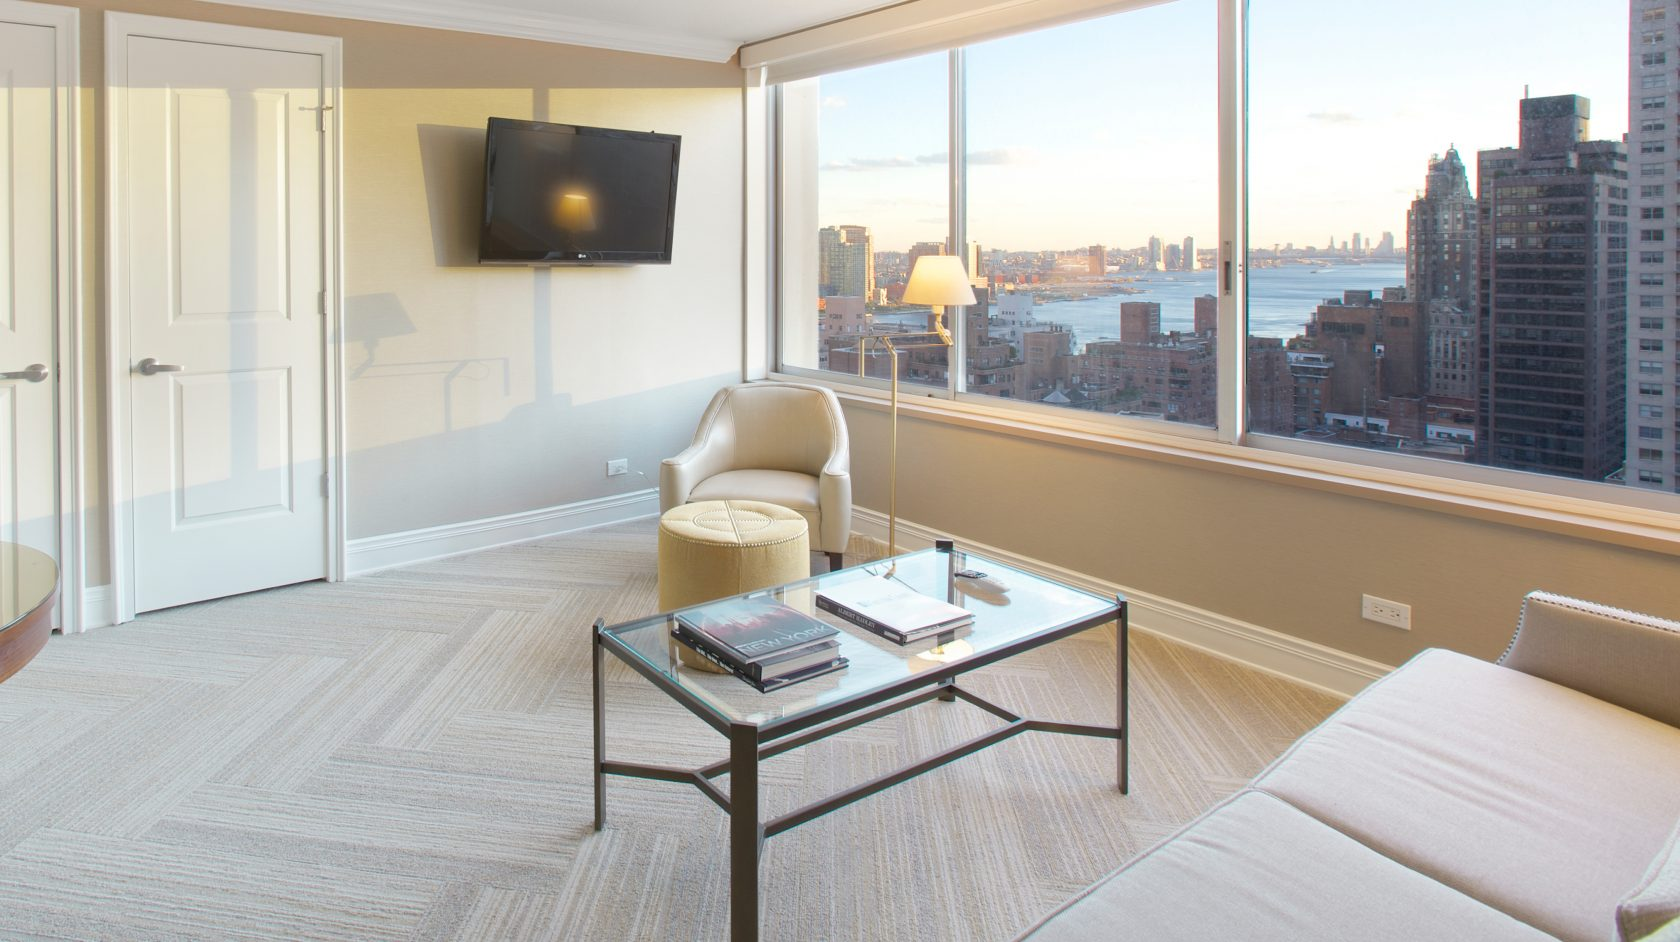 one bed extended stay room at Sutton Court in nyc\